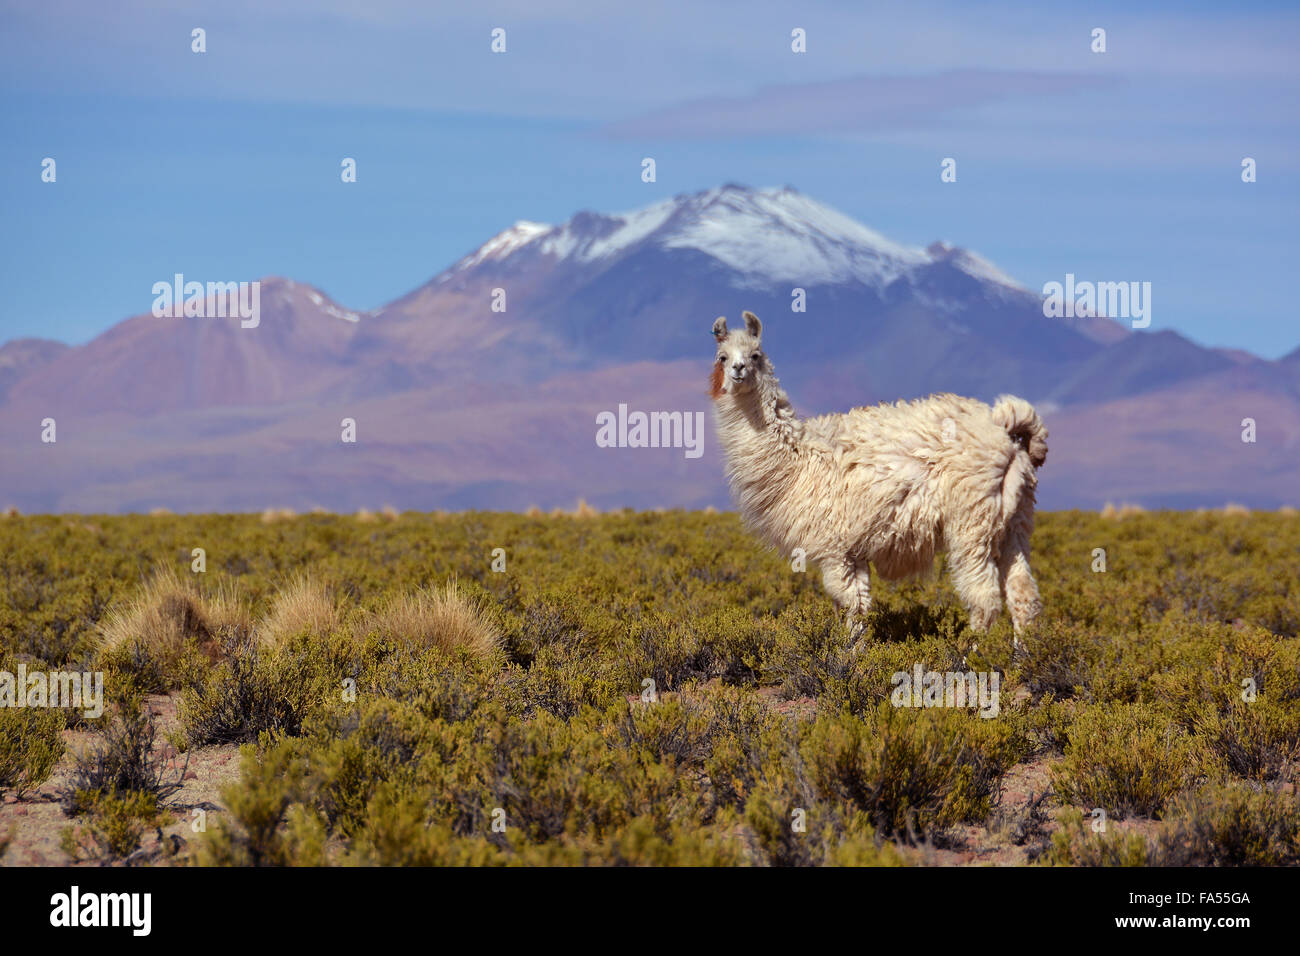 Llama (Lama glama) in front of snow-capped Andes, Uyuni, Altiplano, Bolivia - Stock Image